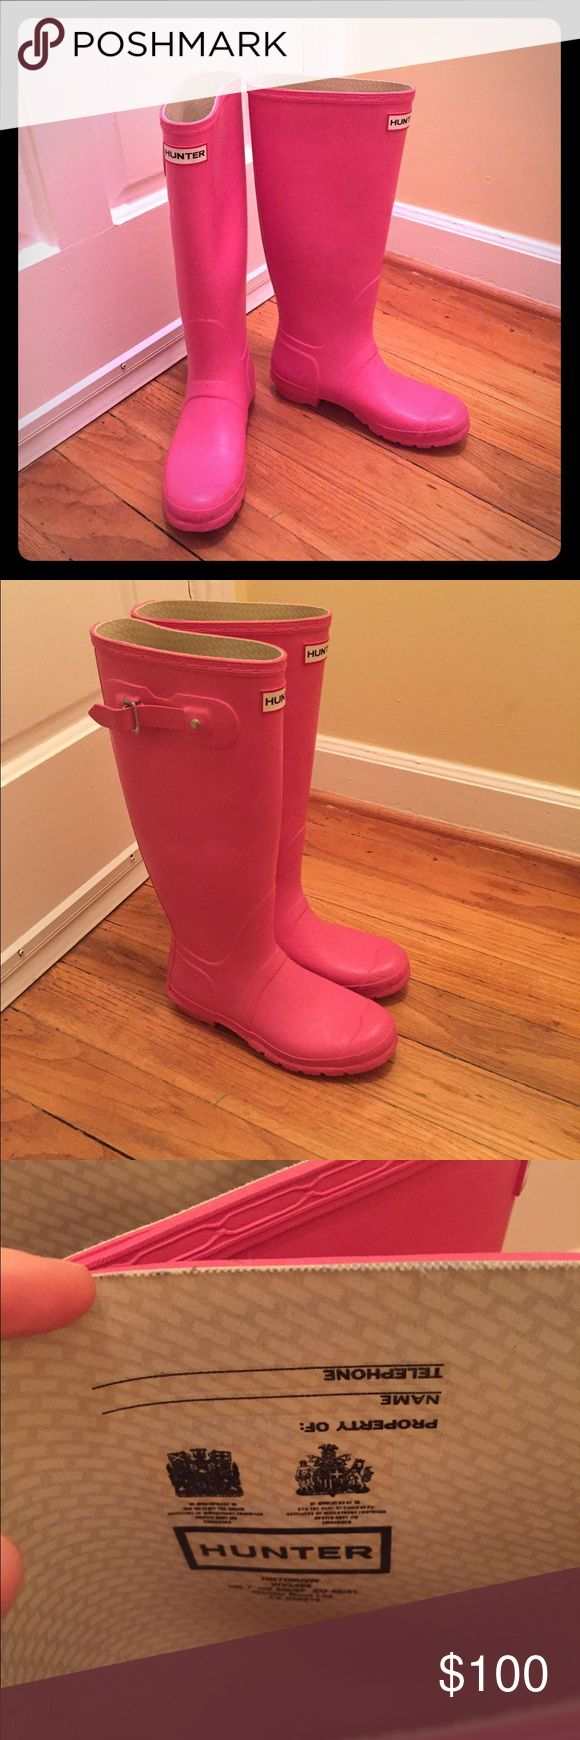 Tall Hunter Rain Boots- Size 9 Tall pink women's Hunter Rain Boots. Only worn several times- great condition. Hunter Shoes Winter & Rain Boots